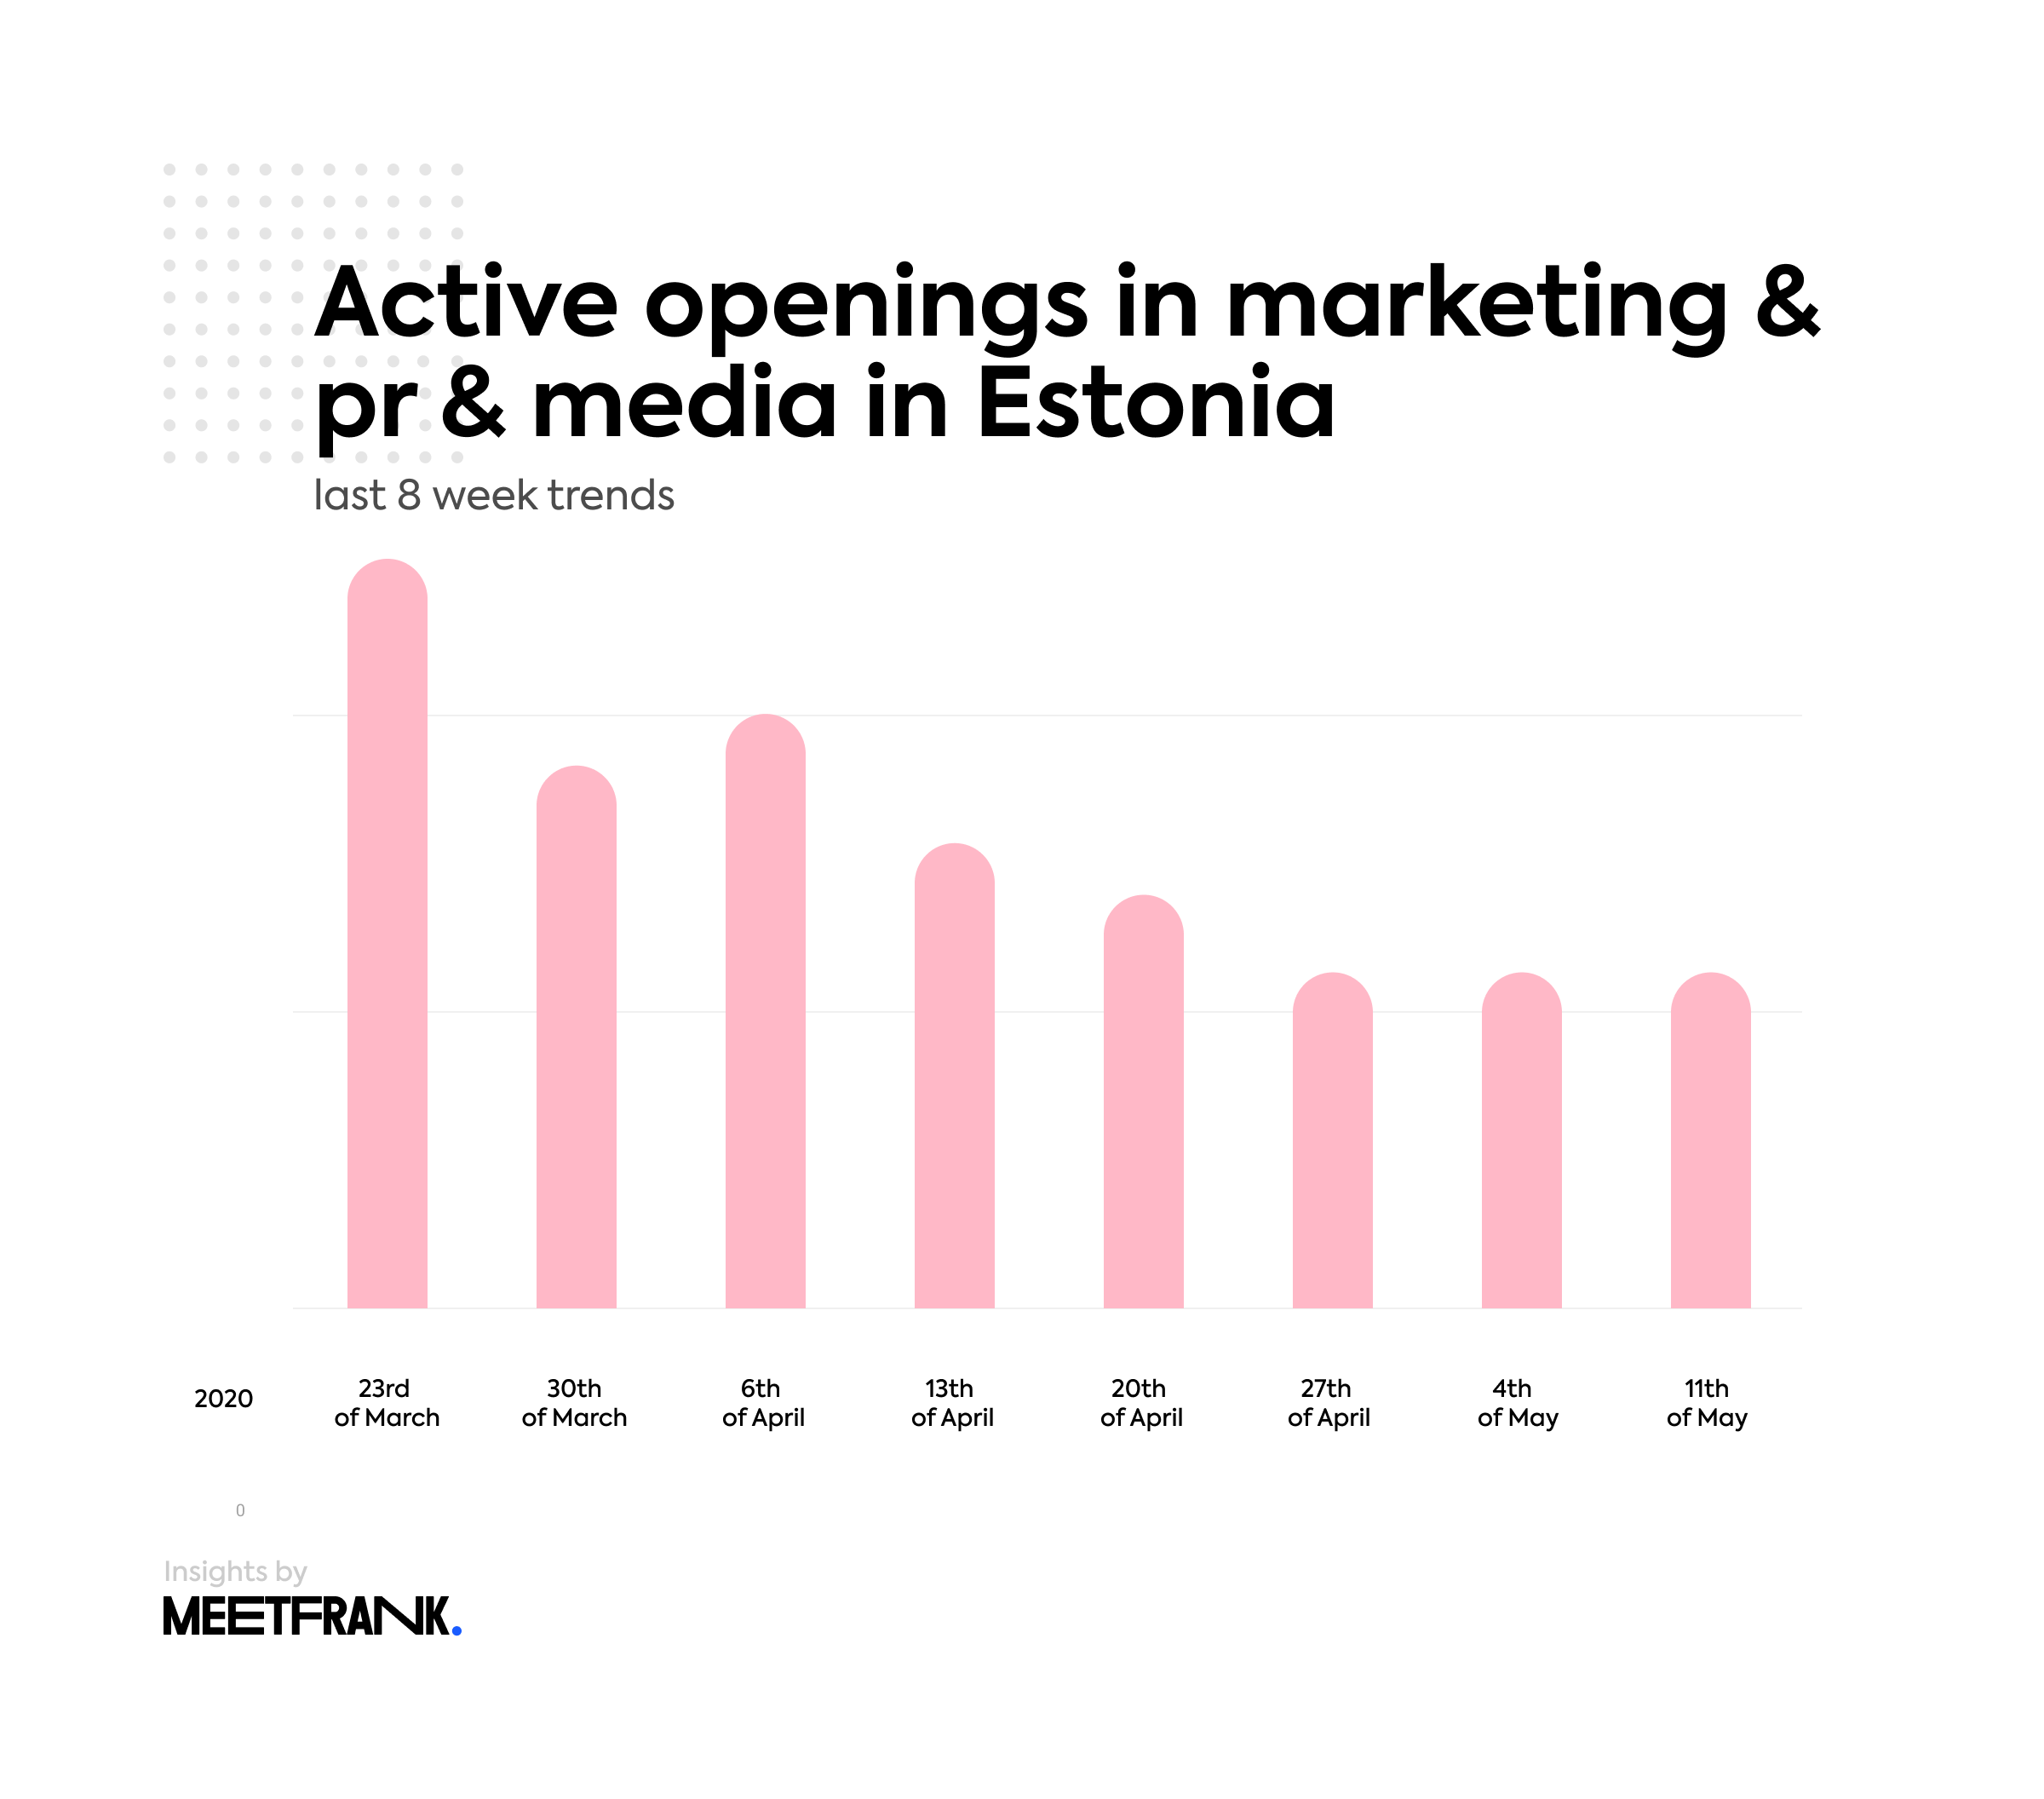 active job openings in marketing pr media in Estonia